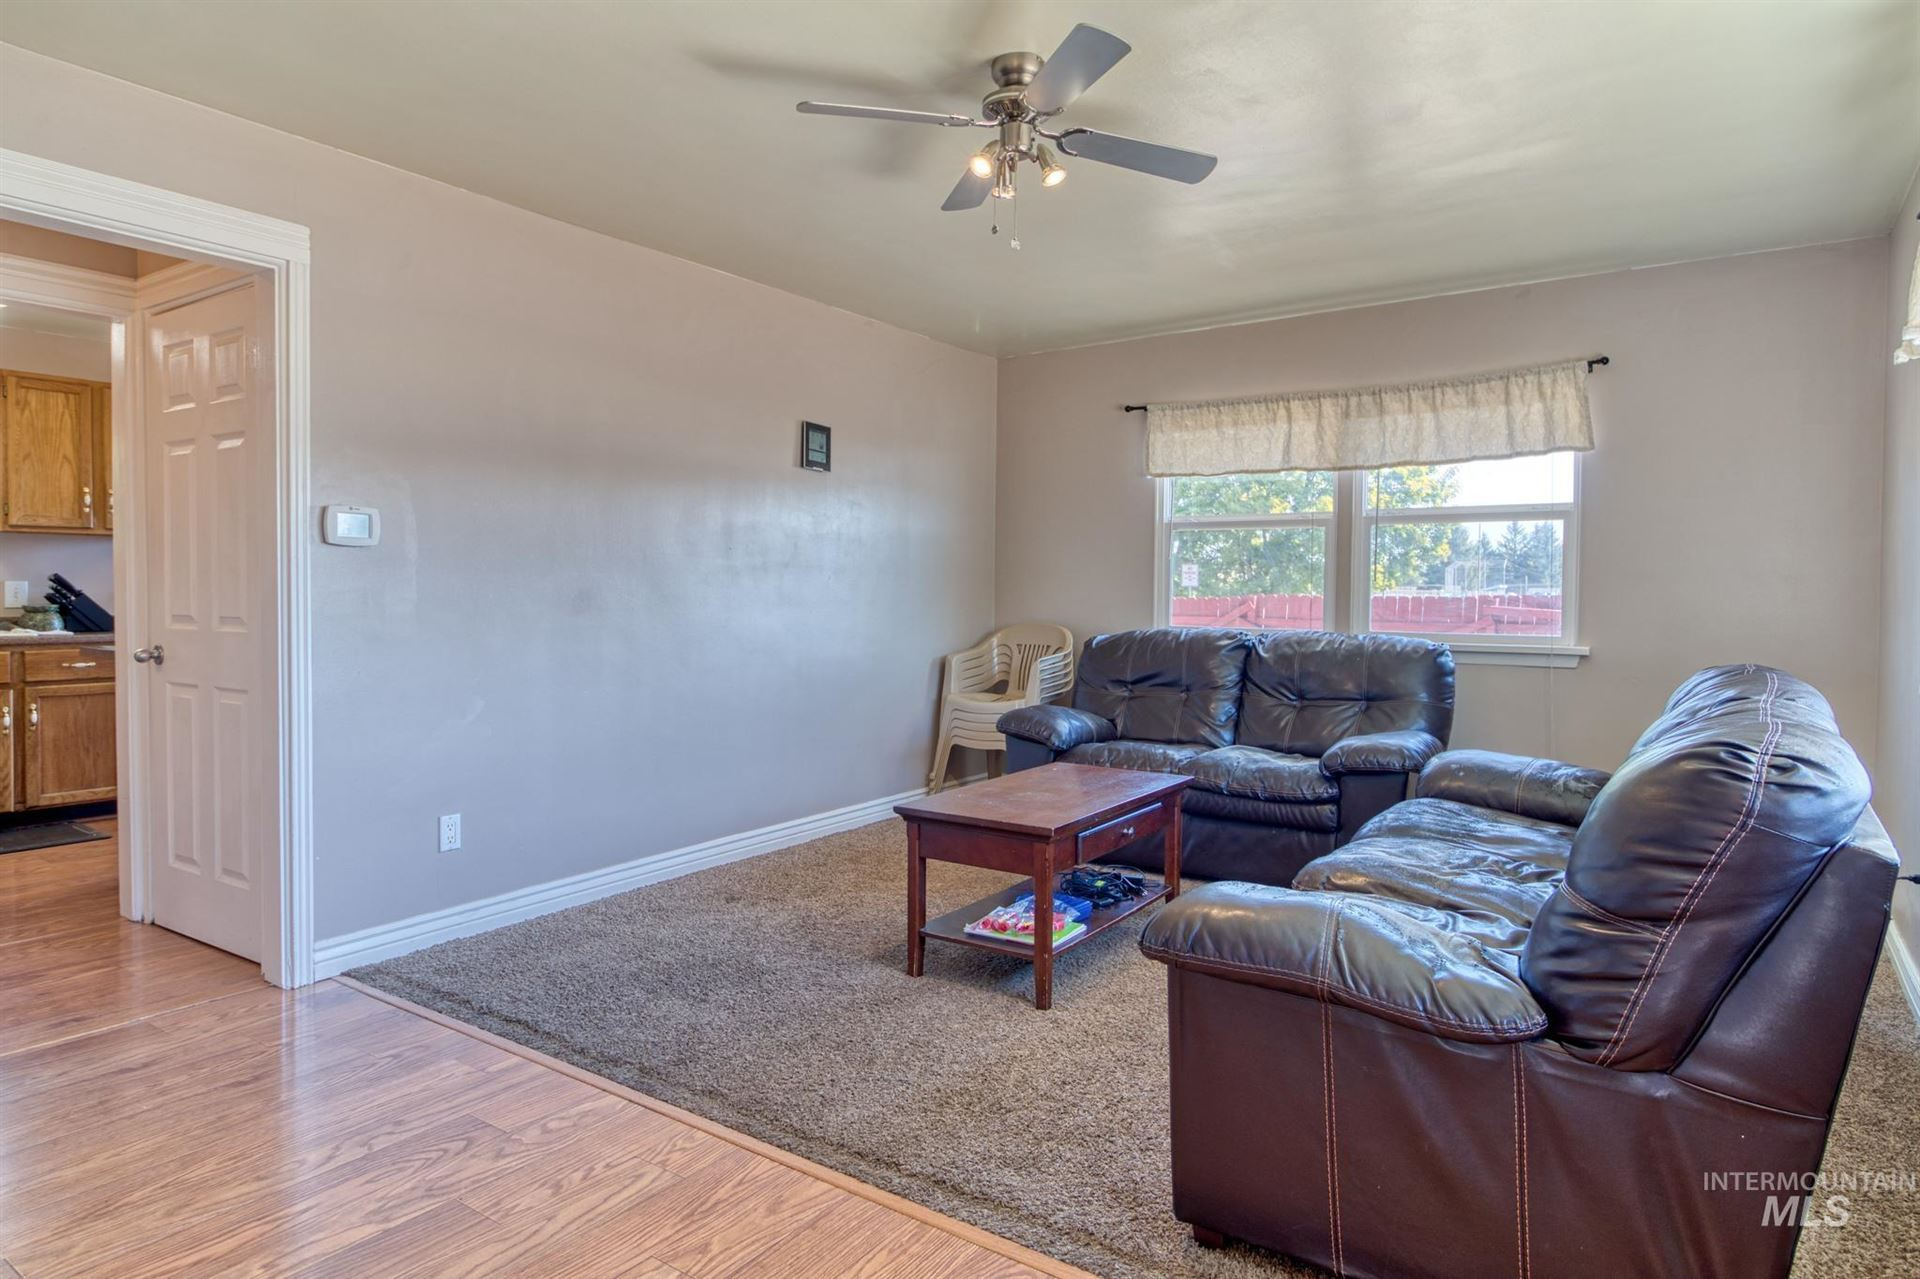 Photo of 1443 Spruce Ave E, Twin Falls, ID 83301 (MLS # 98819117)